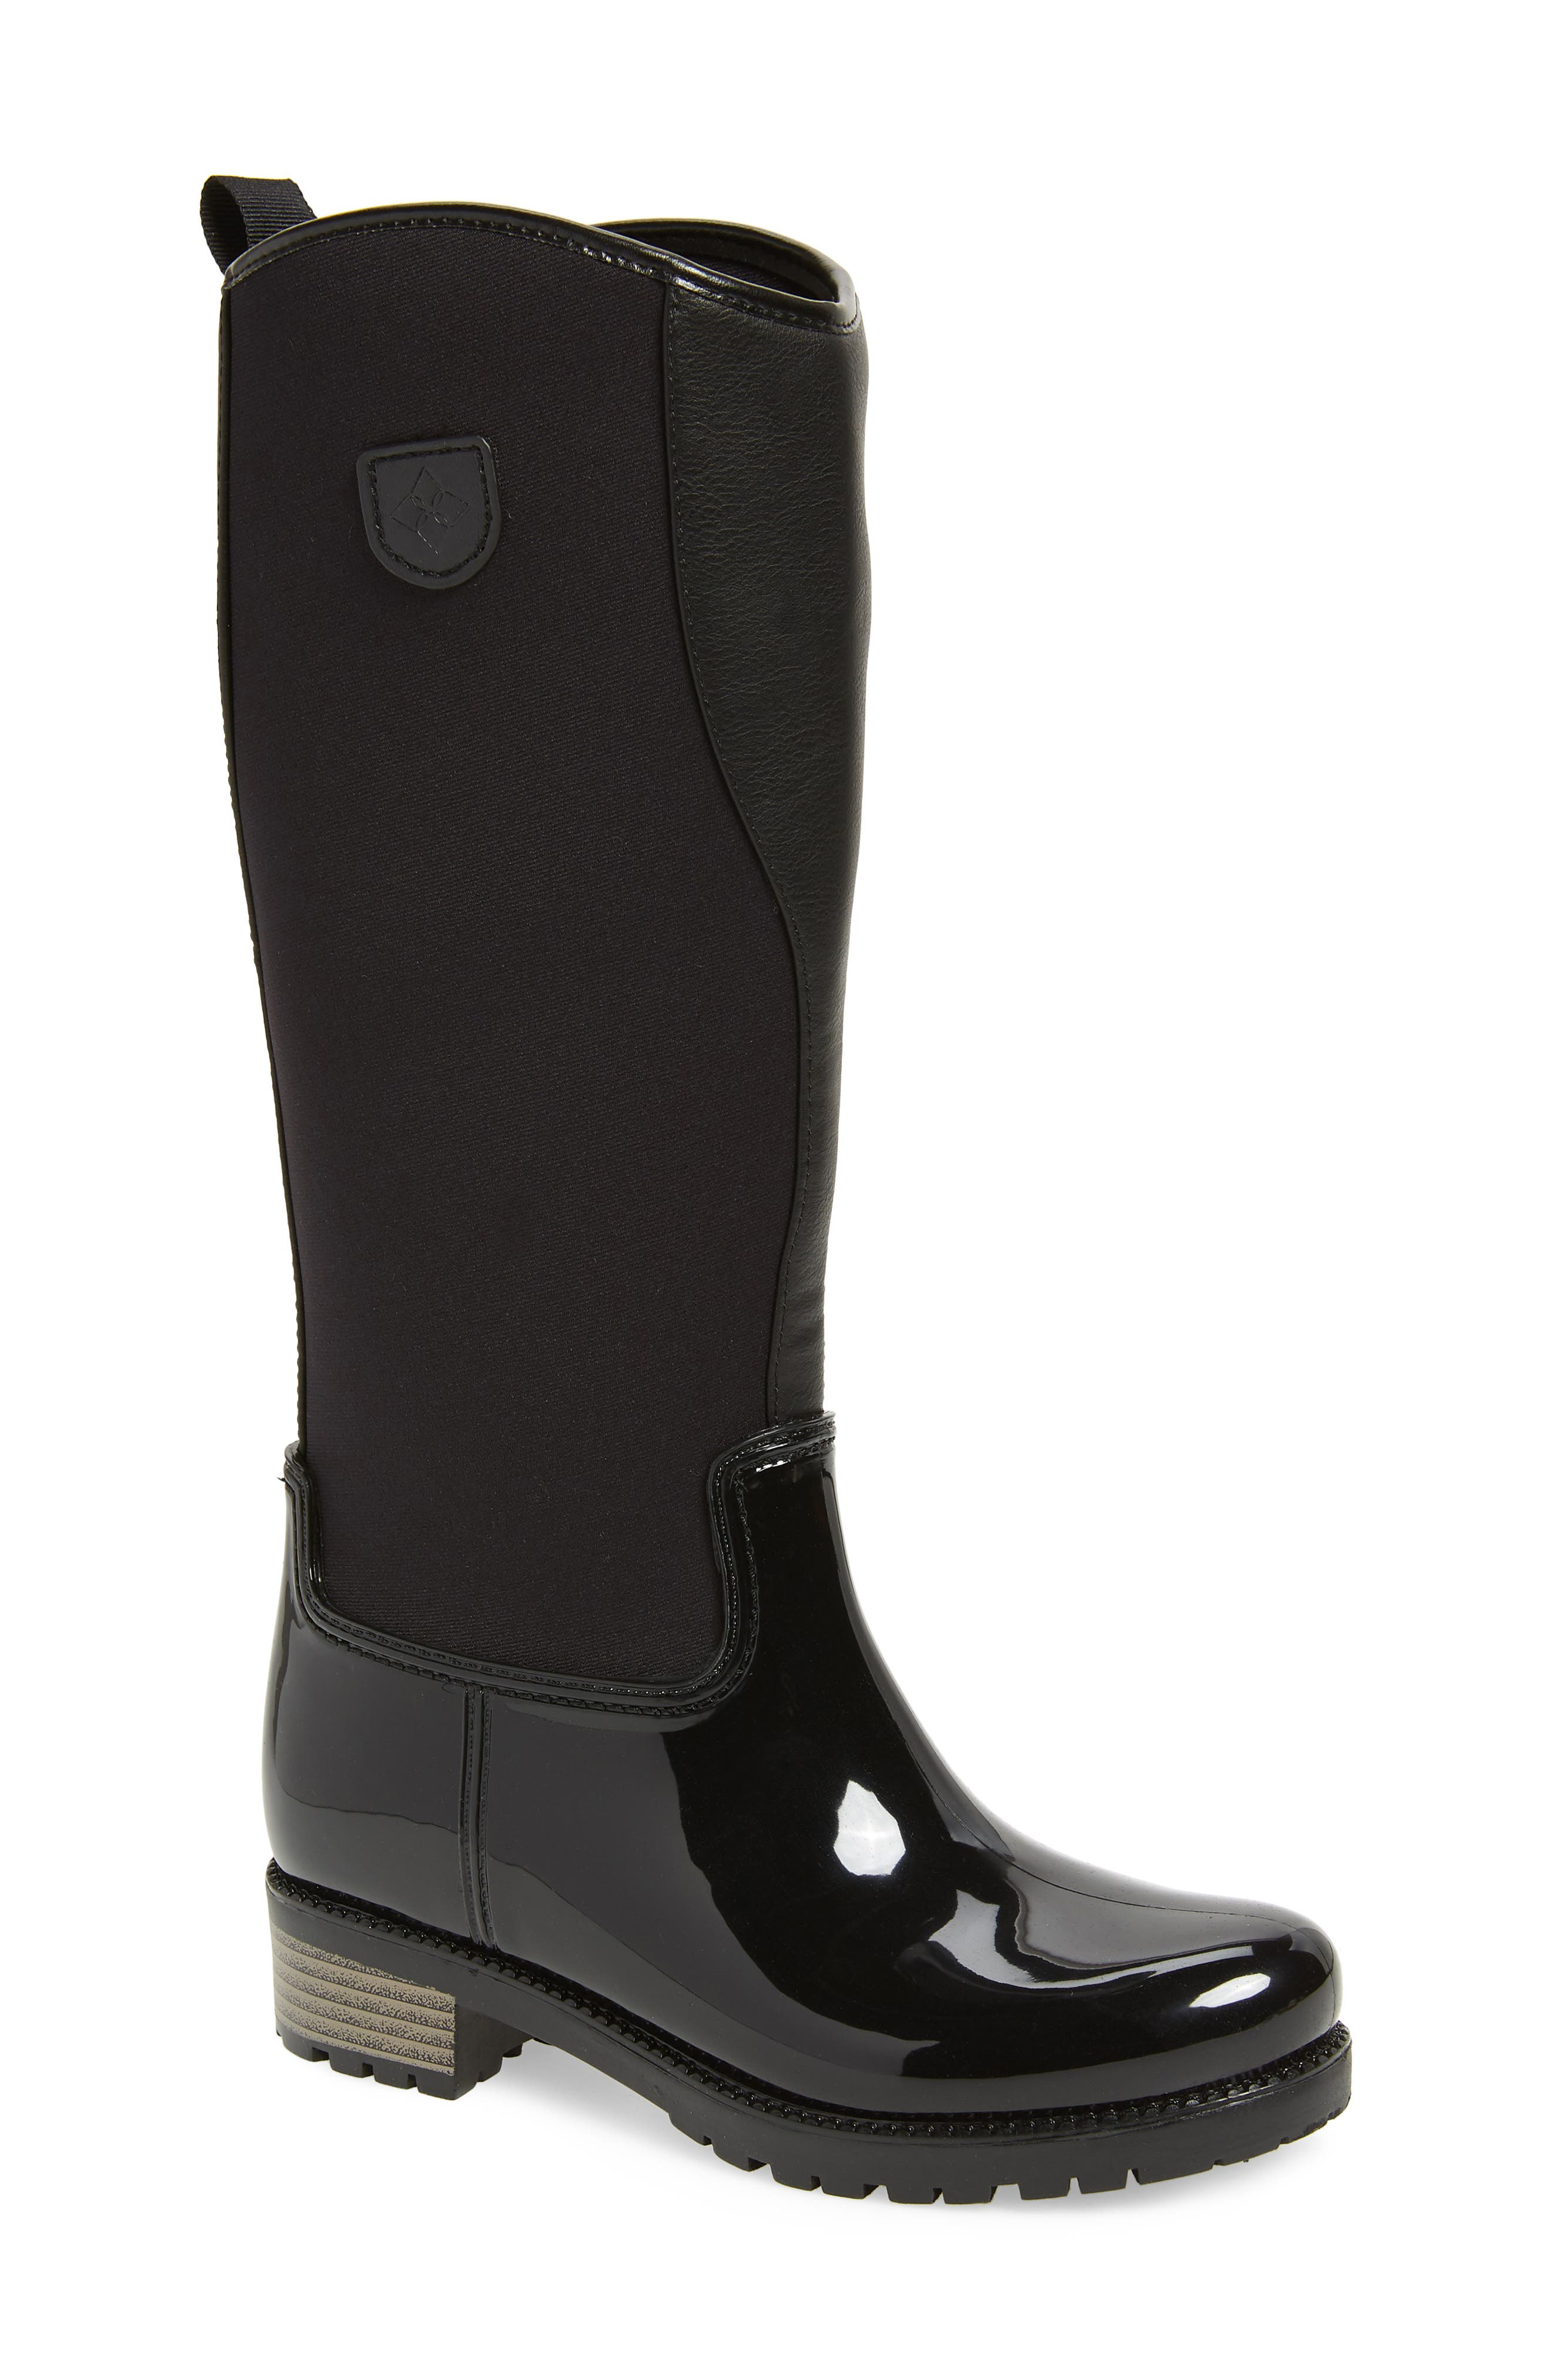 Parma 2 Tall Waterproof Rain Boot,                         Main,                         color, Black Fabric